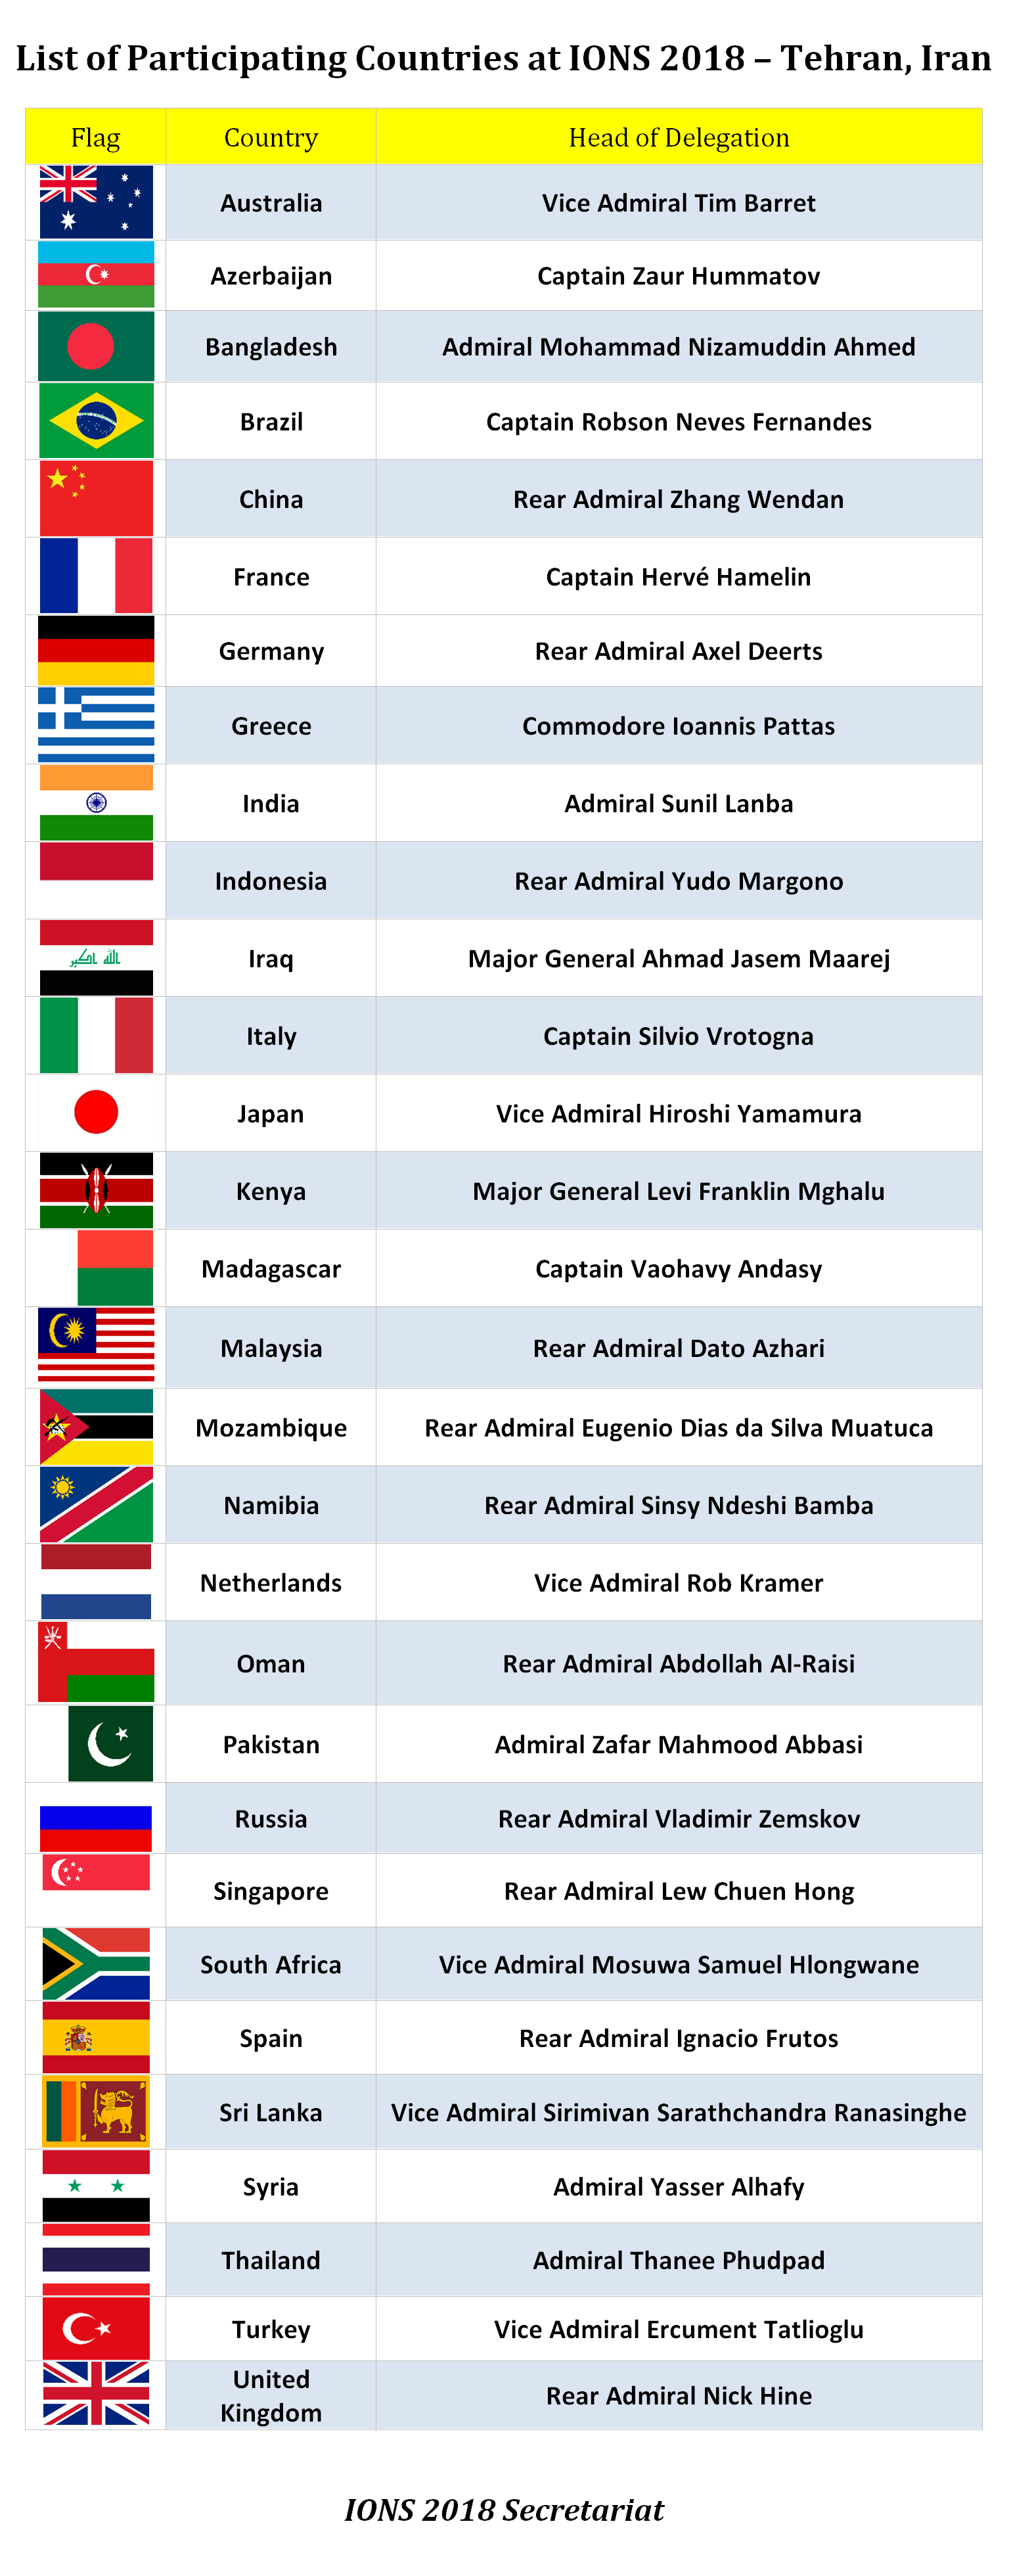 Participating Countries at IONS 2018